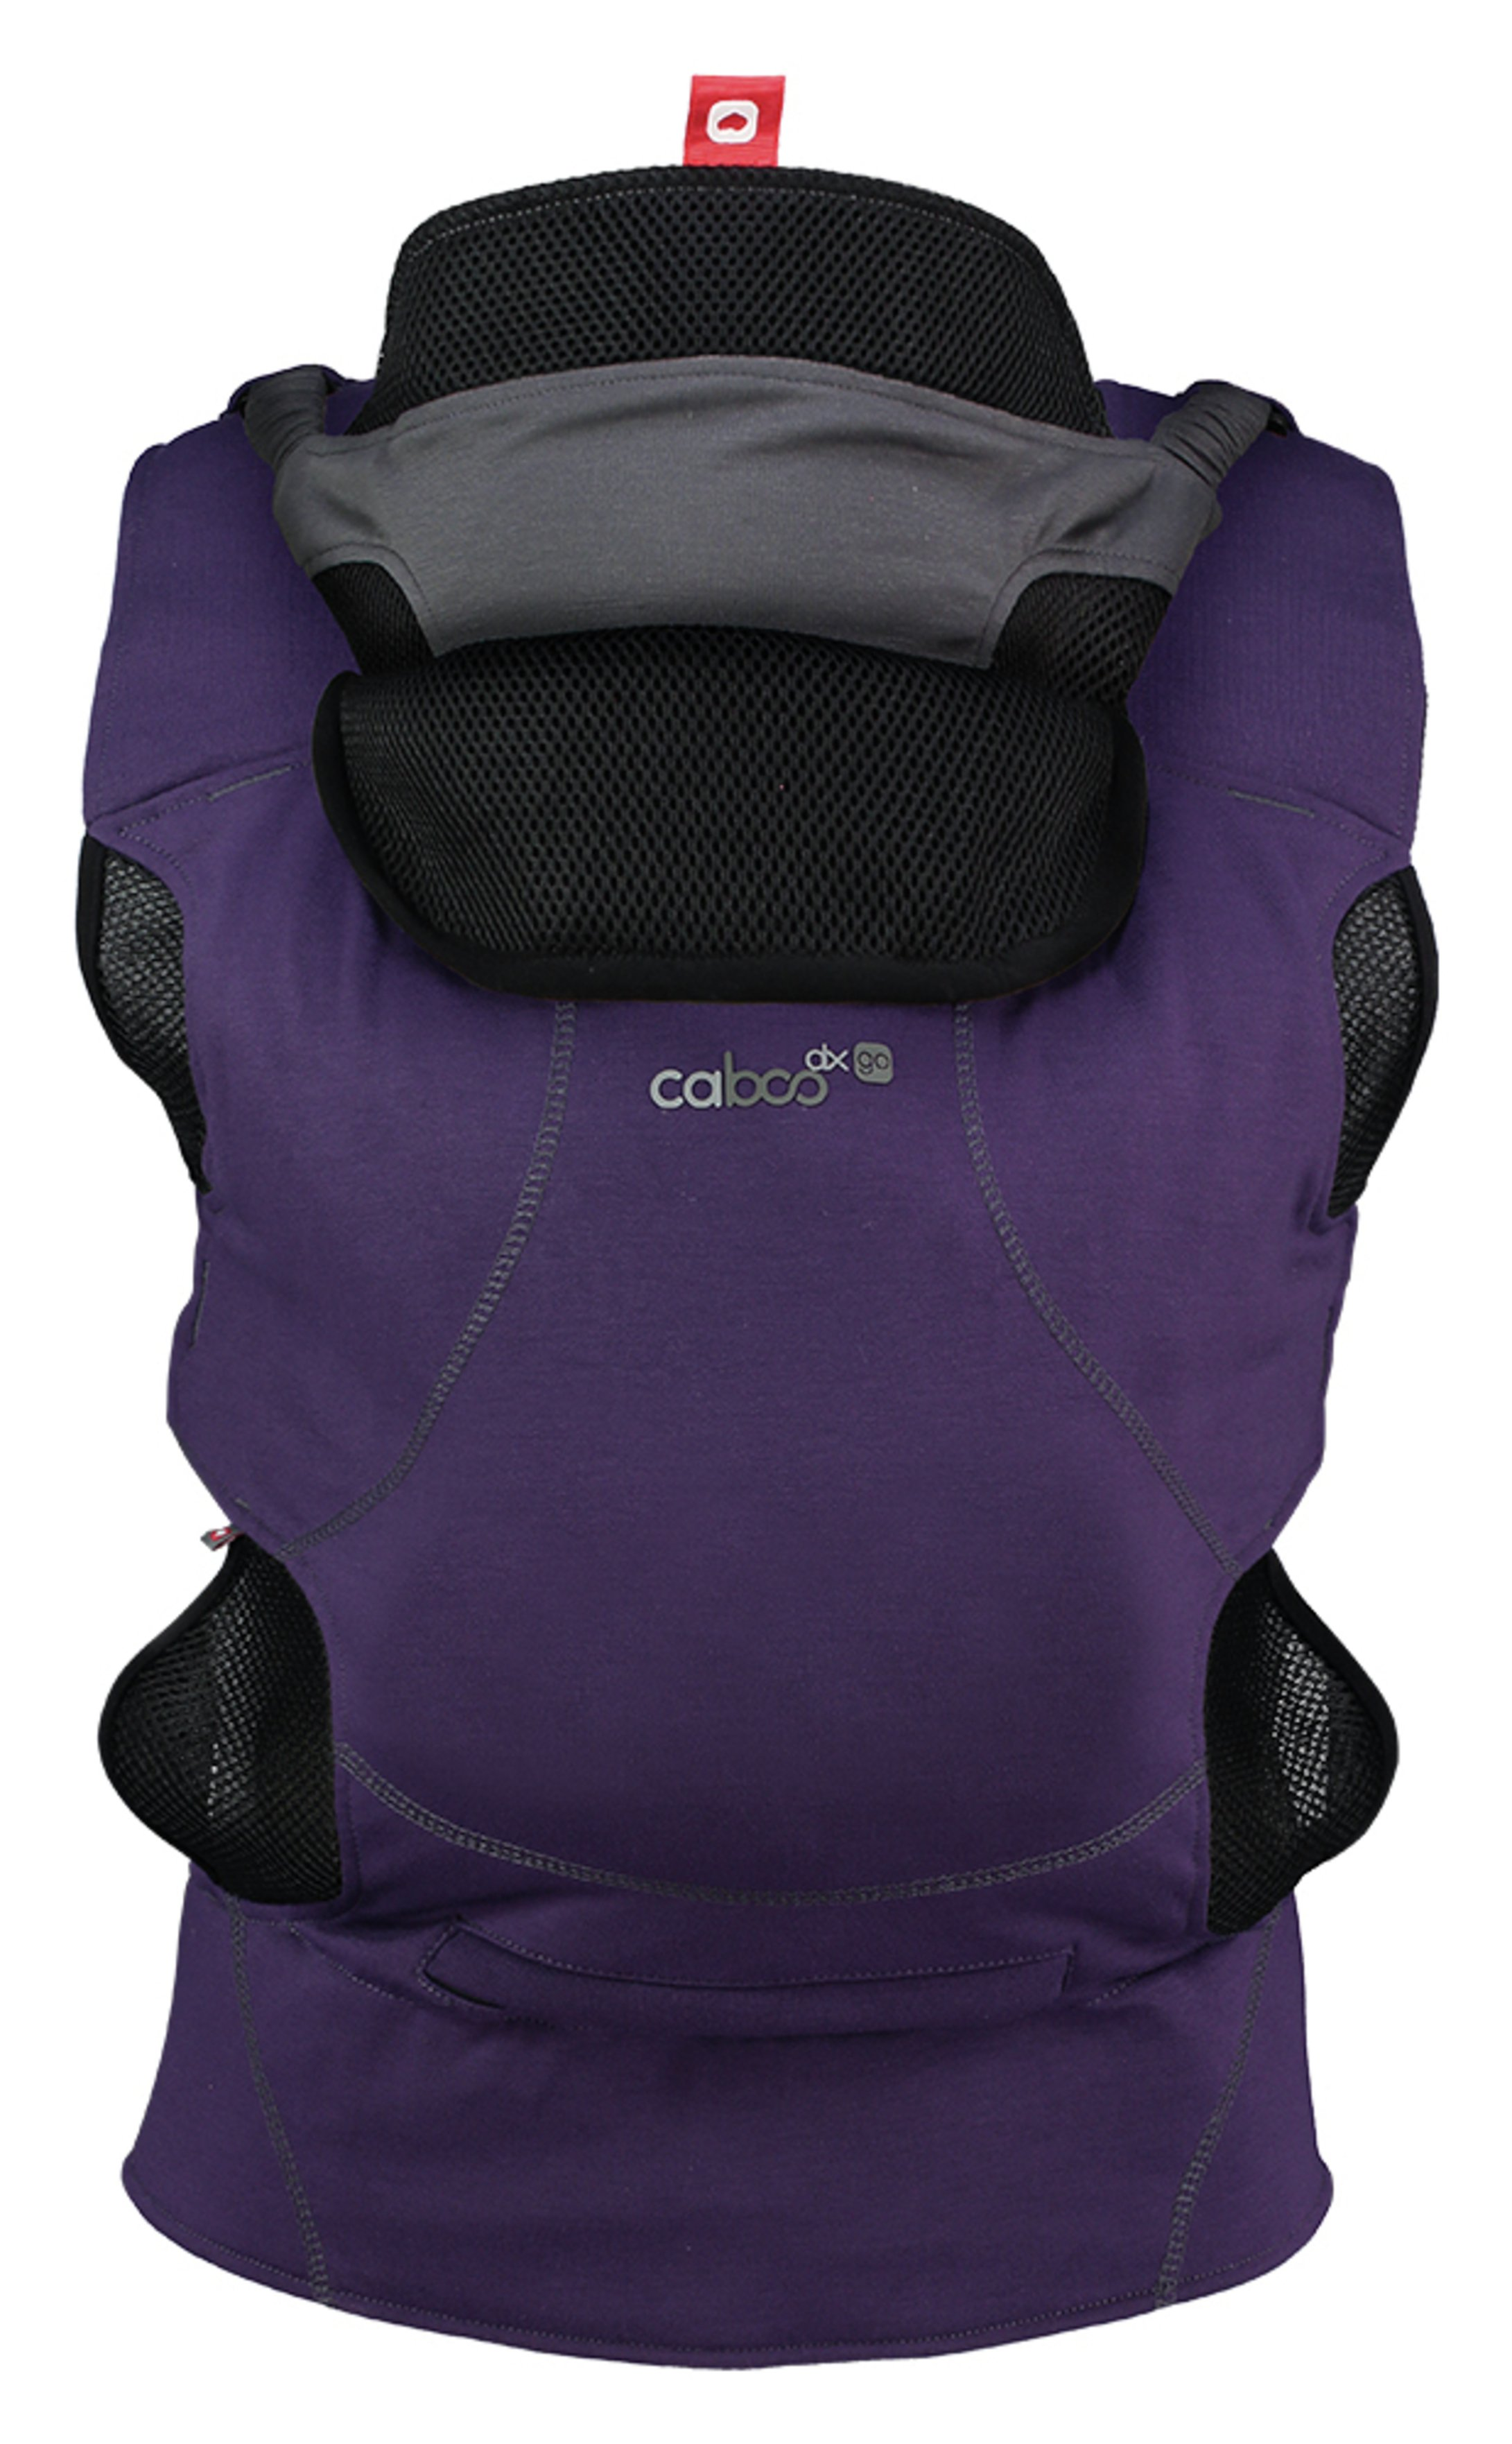 Image of Caboo DXGO Baby Carrier - Plum